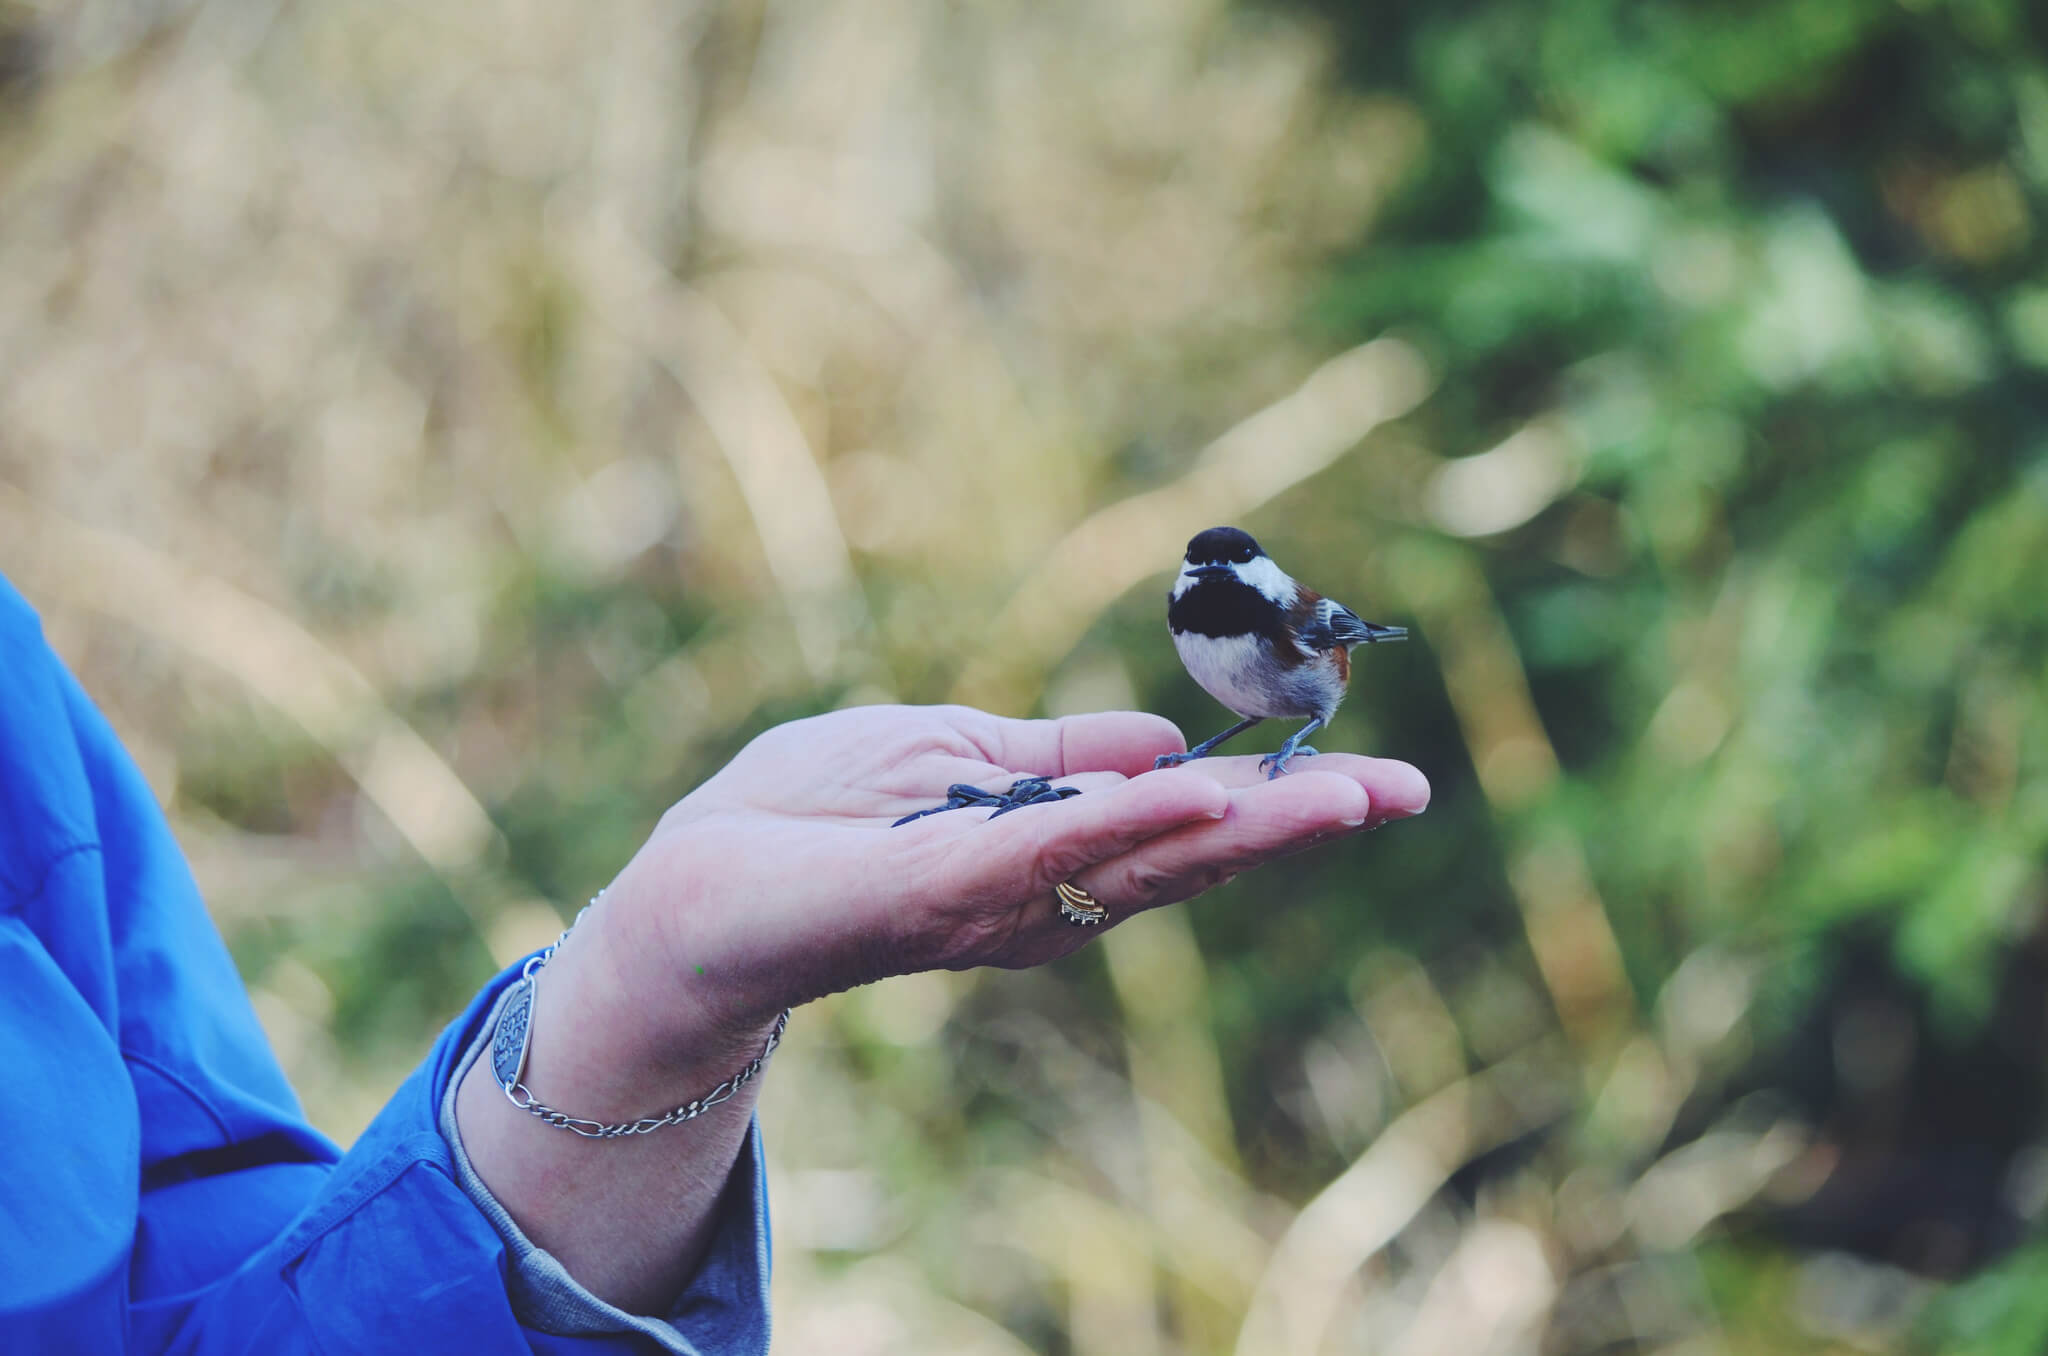 Feeding a Chickadee